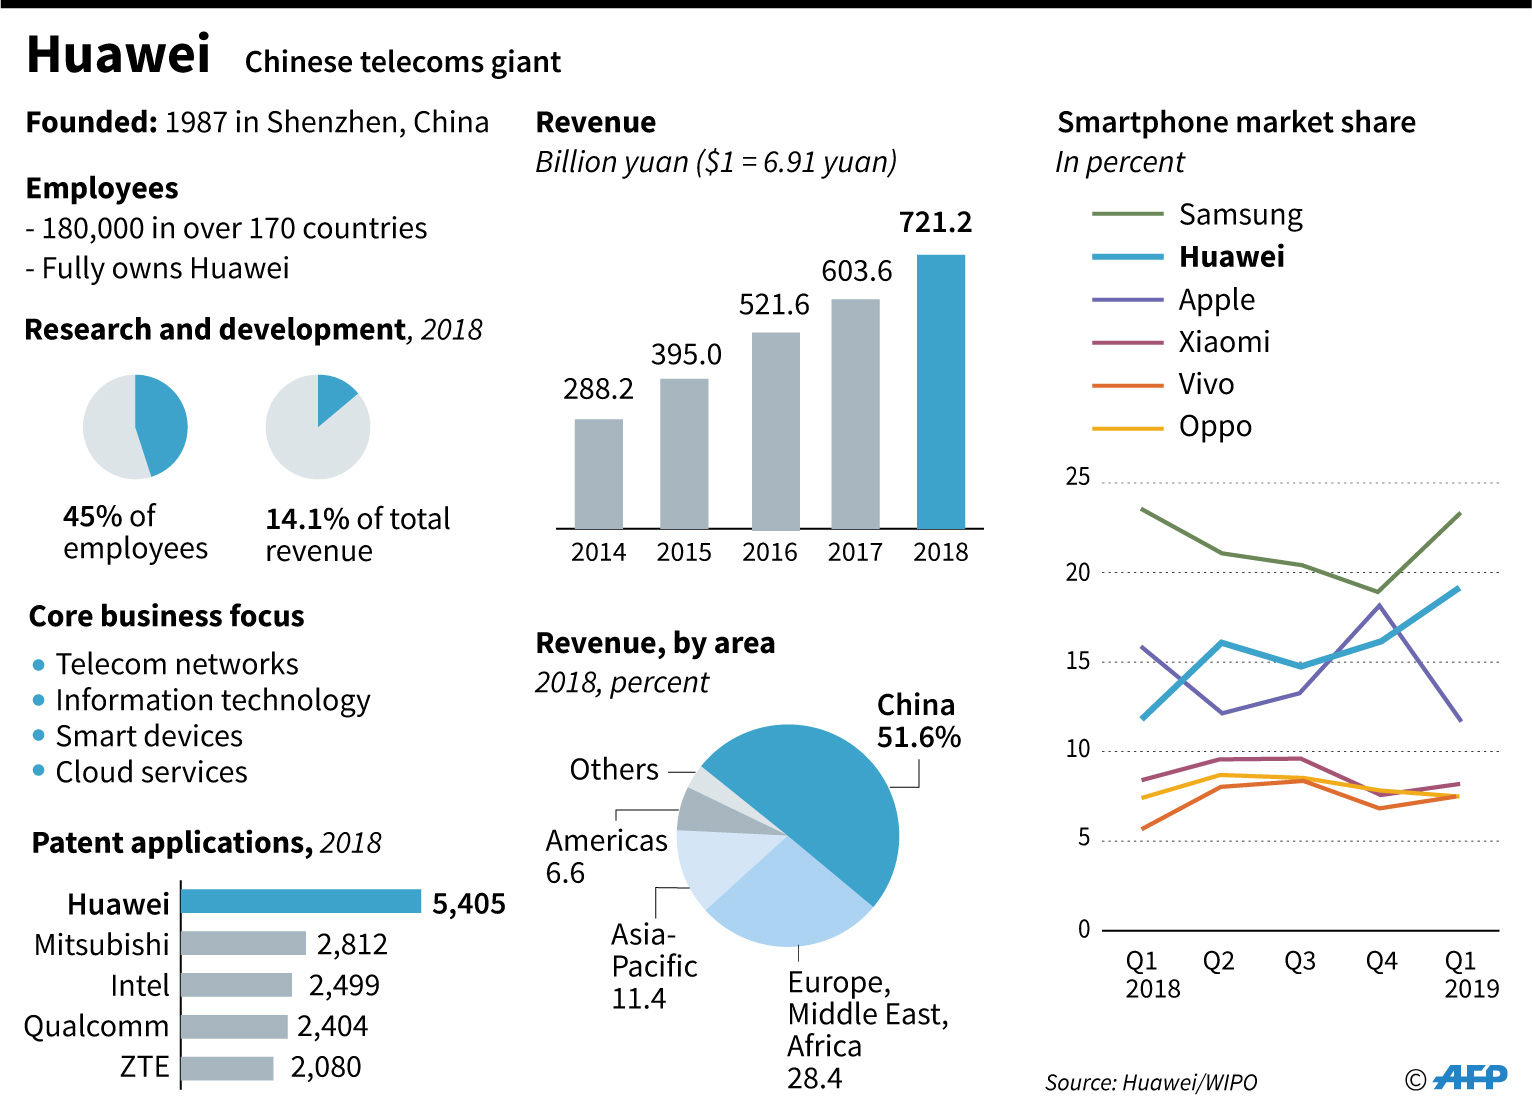 Factfile on China's Huawei, including revenues, core business areas, patent applications and smartphone market share.